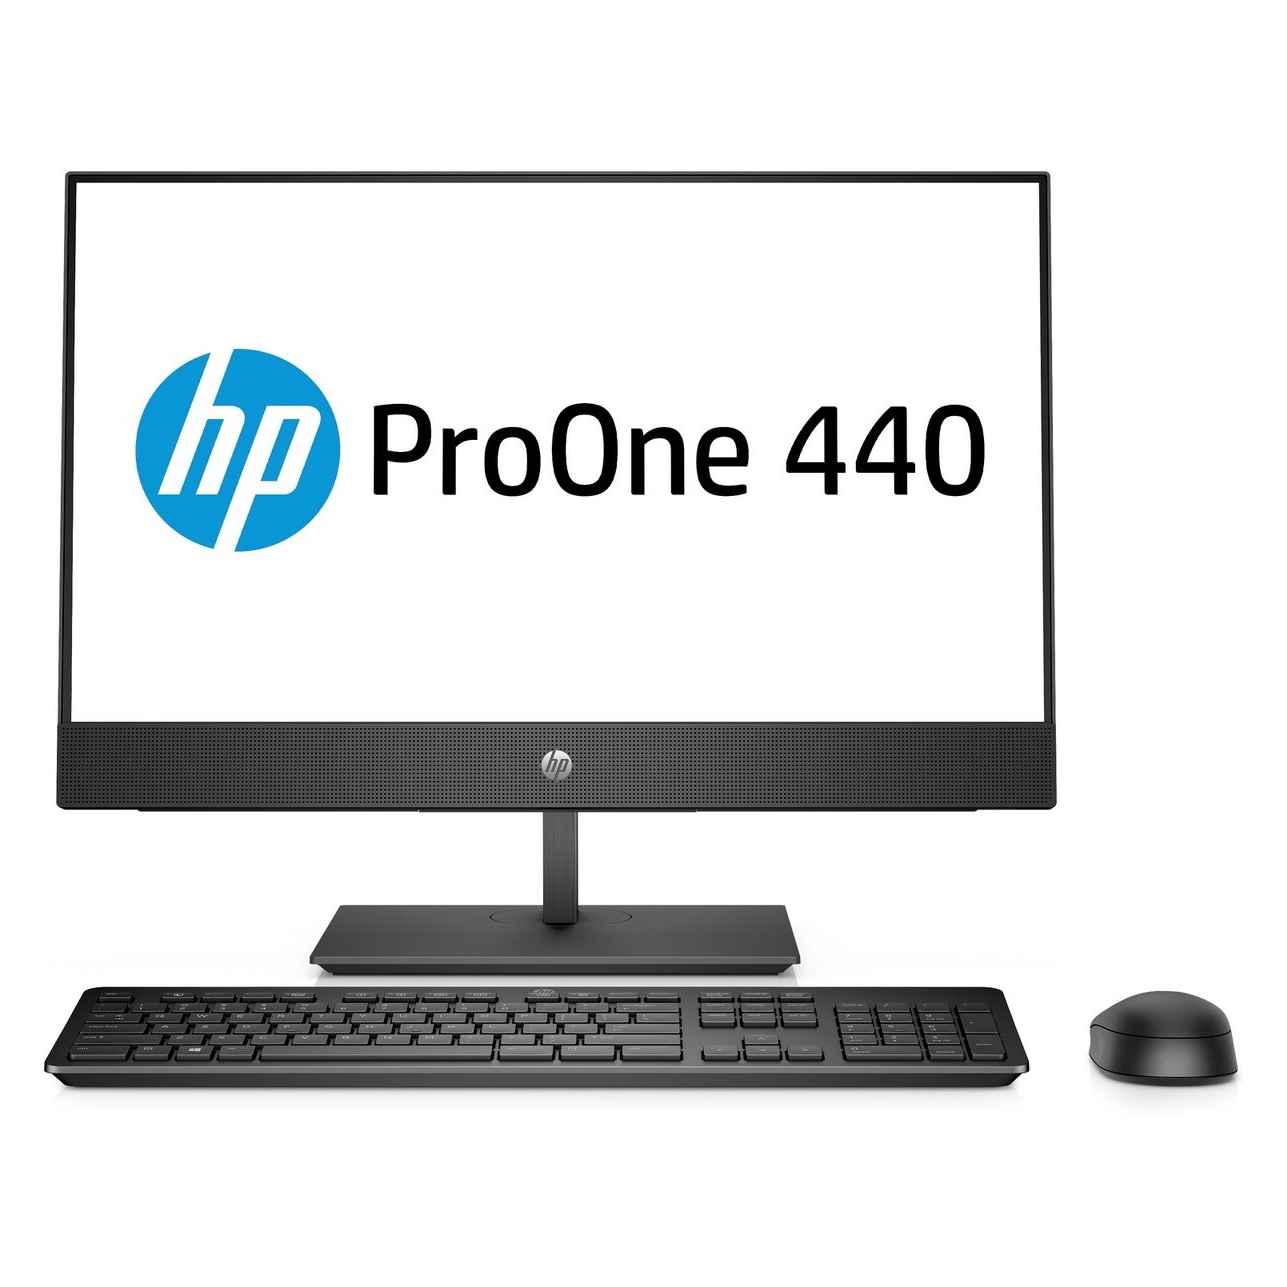 "HP PROONE 440 G4 4NT87EA i5-8500T 4GB 1TB O/B VGA 23.8"" NONTOUCH FREDOOS ALL IN ONE PC"